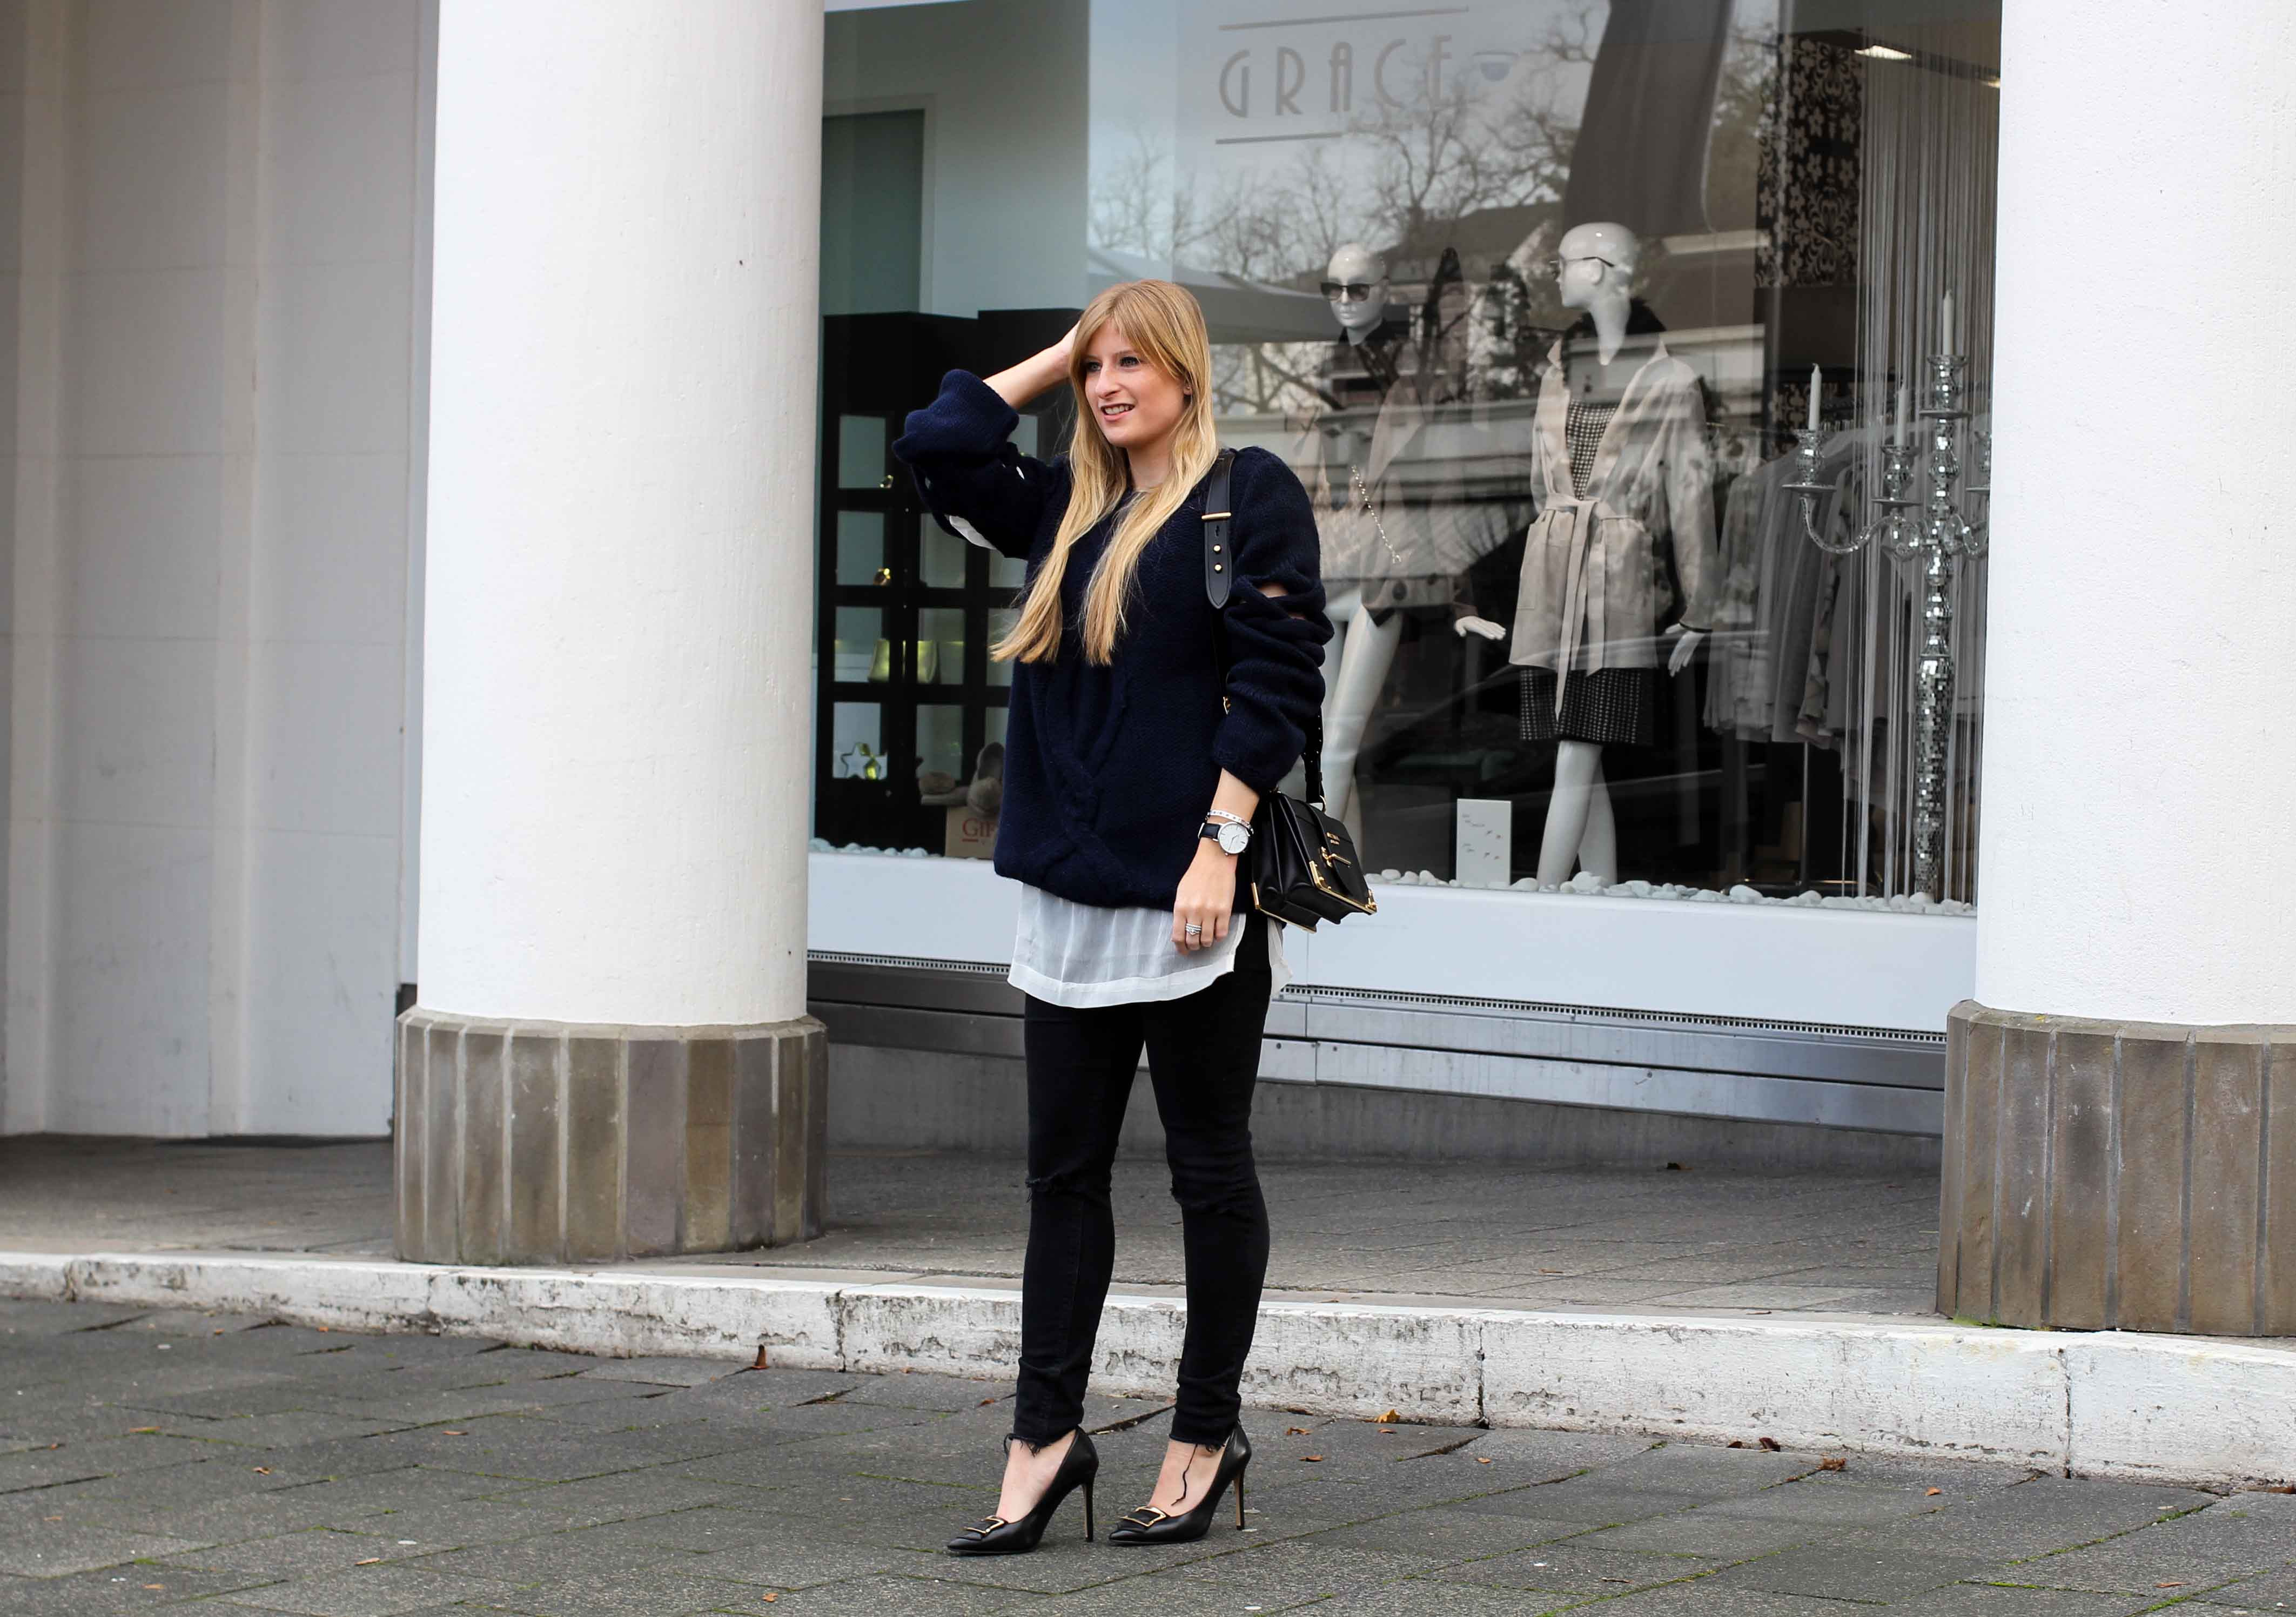 Streetstyle Wollpullover mit Cut-Outs Zopfmuster Asos Prada Tasche Modeblogger 7